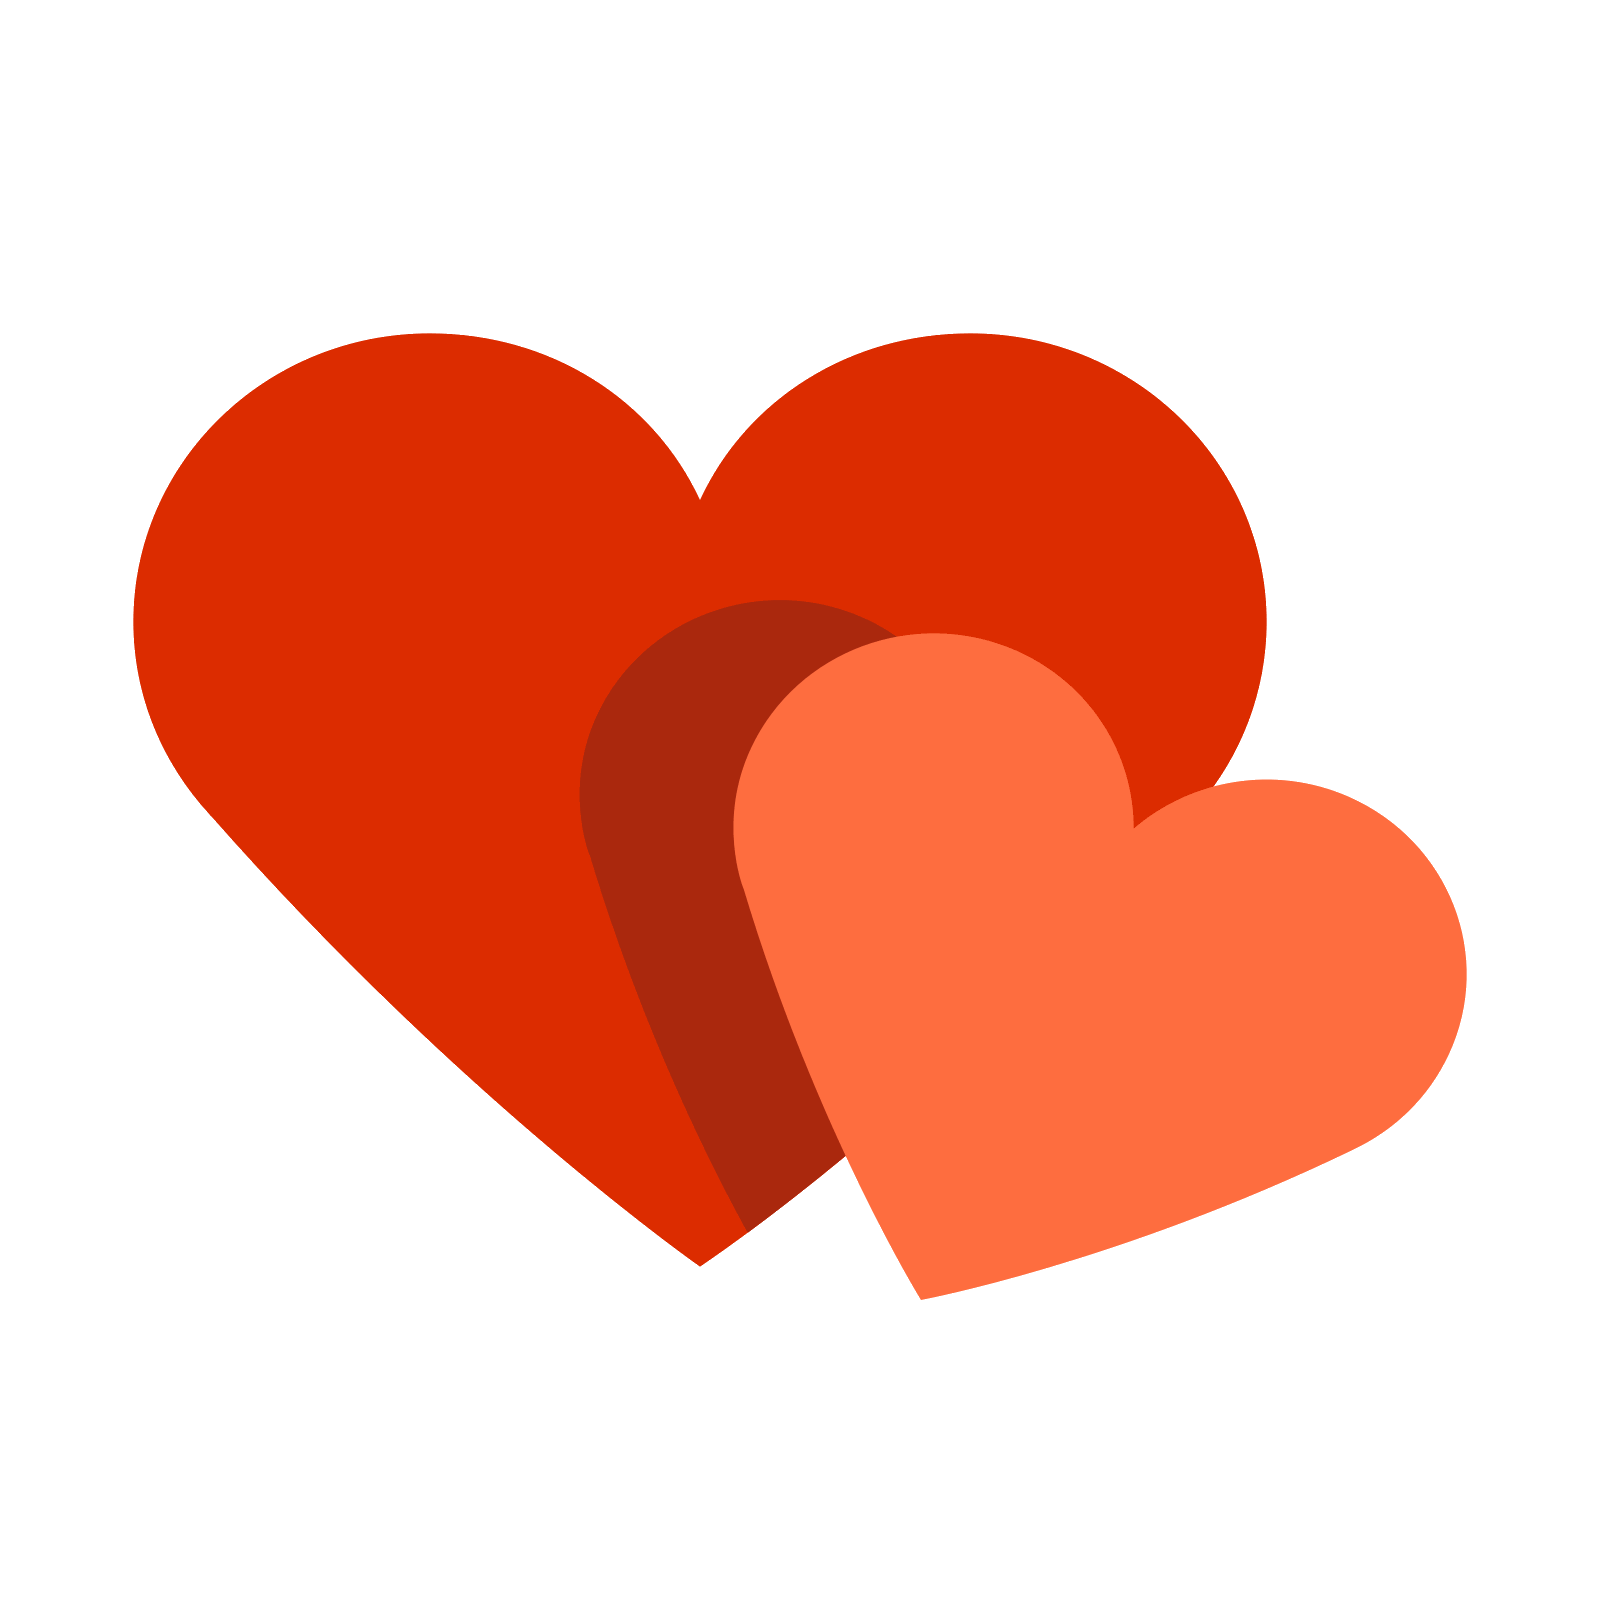 Two hearts png. Ic ne t l